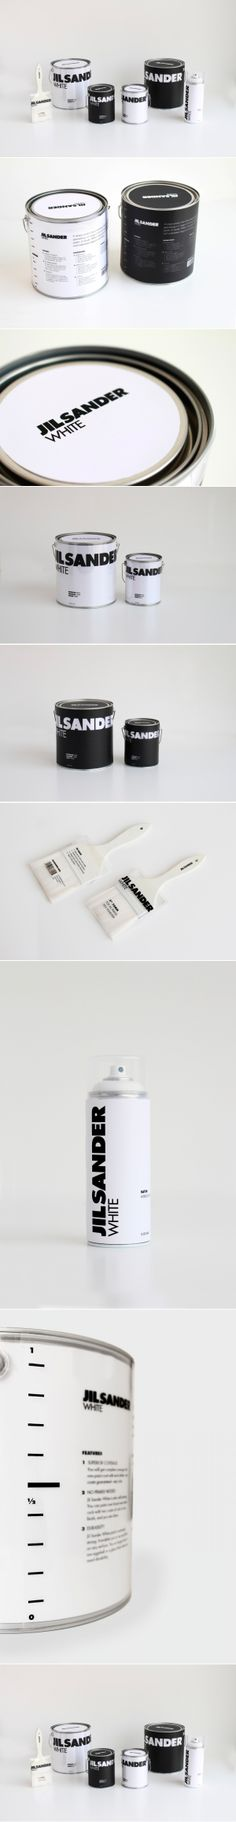 Student Project - Jil Sander Paint #packaging #design | by Samah Alrajhi